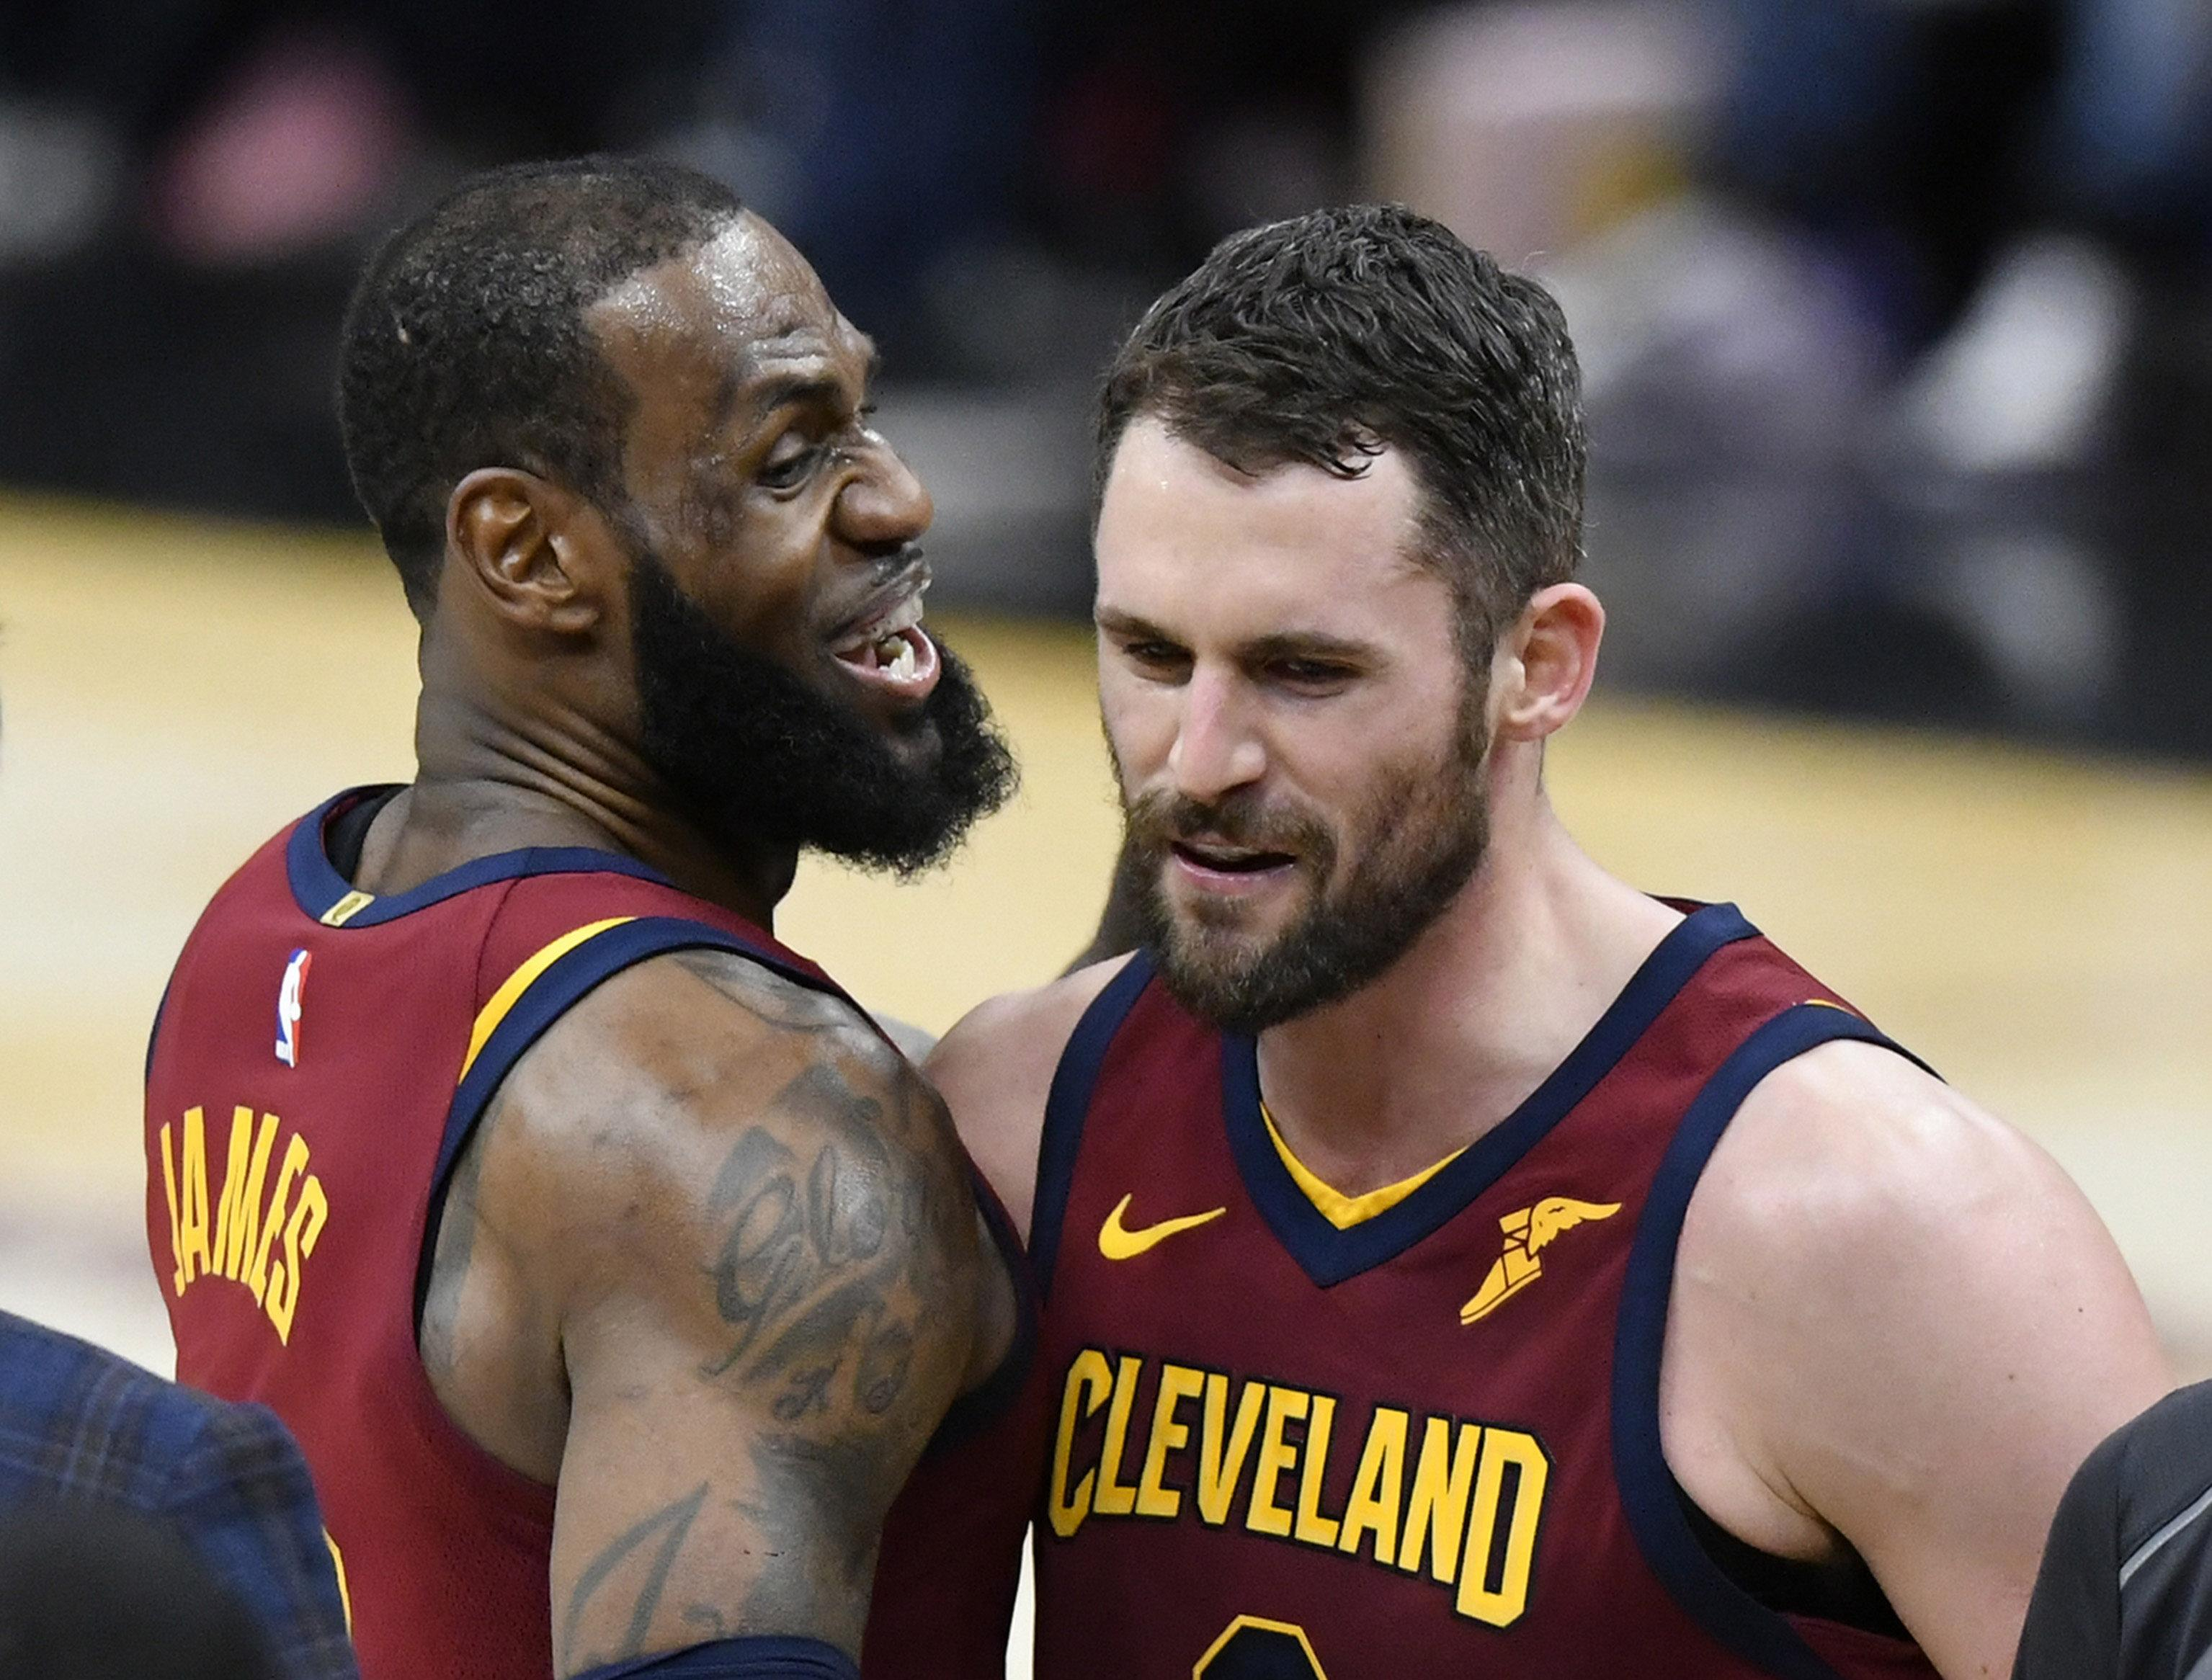 Kevin Love would give an Edge LeBron James